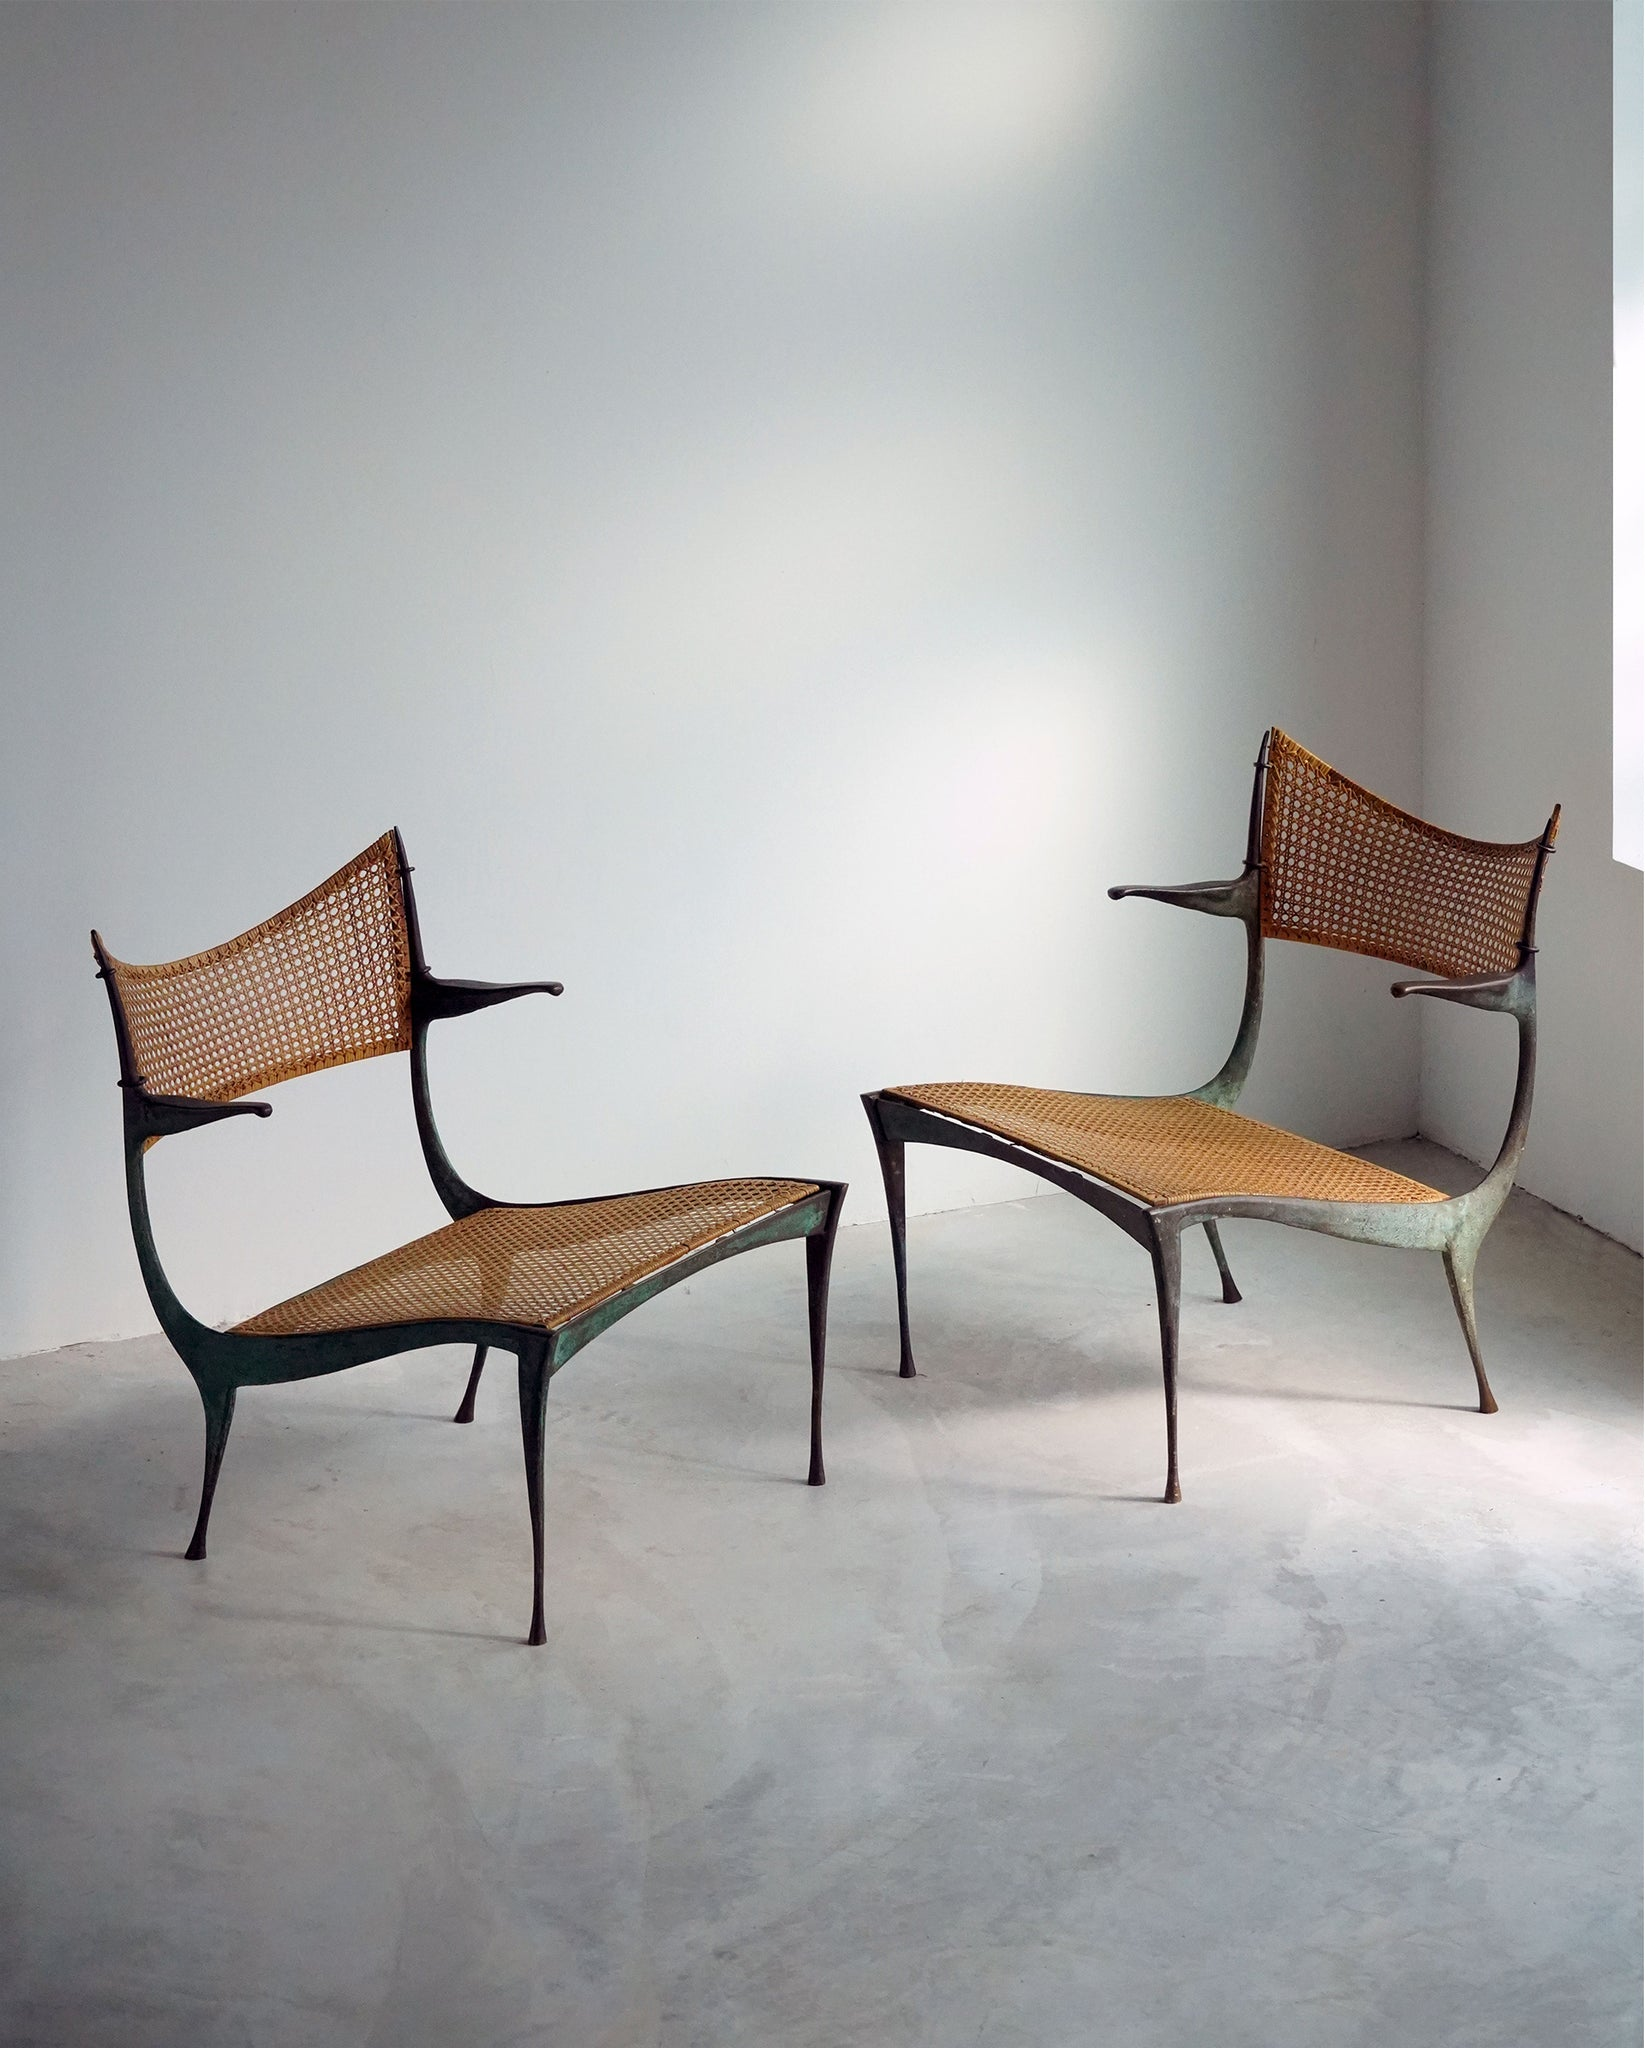 Dan Johnson, Gazelle Lounge Chairs